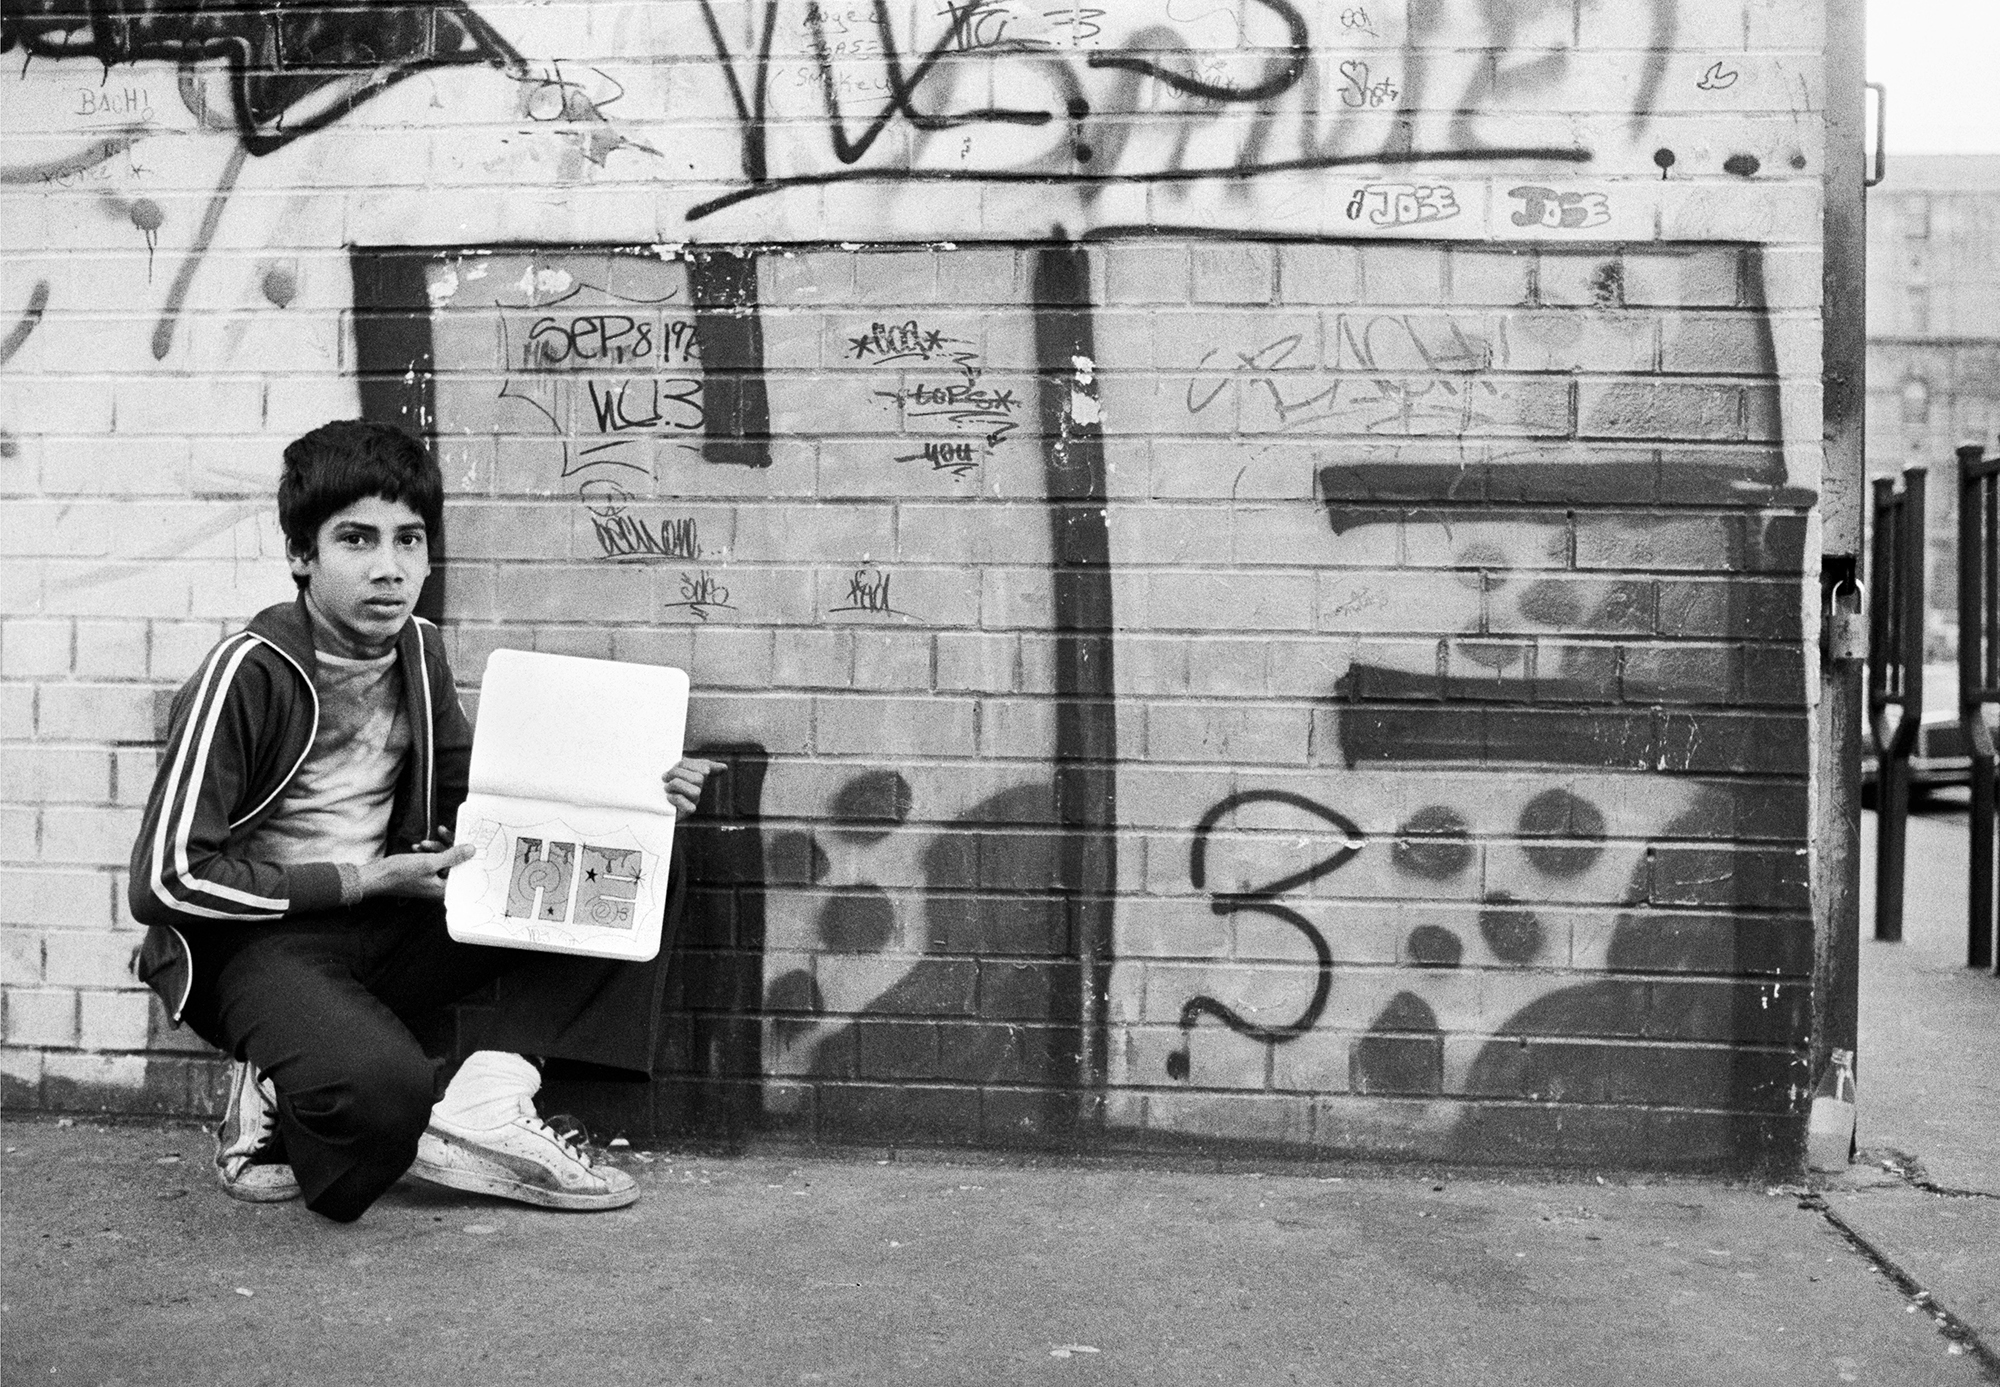 HE3 with His Notebook of Graffiti Drawing, Lower East Side, New York, NY, 1978-1980